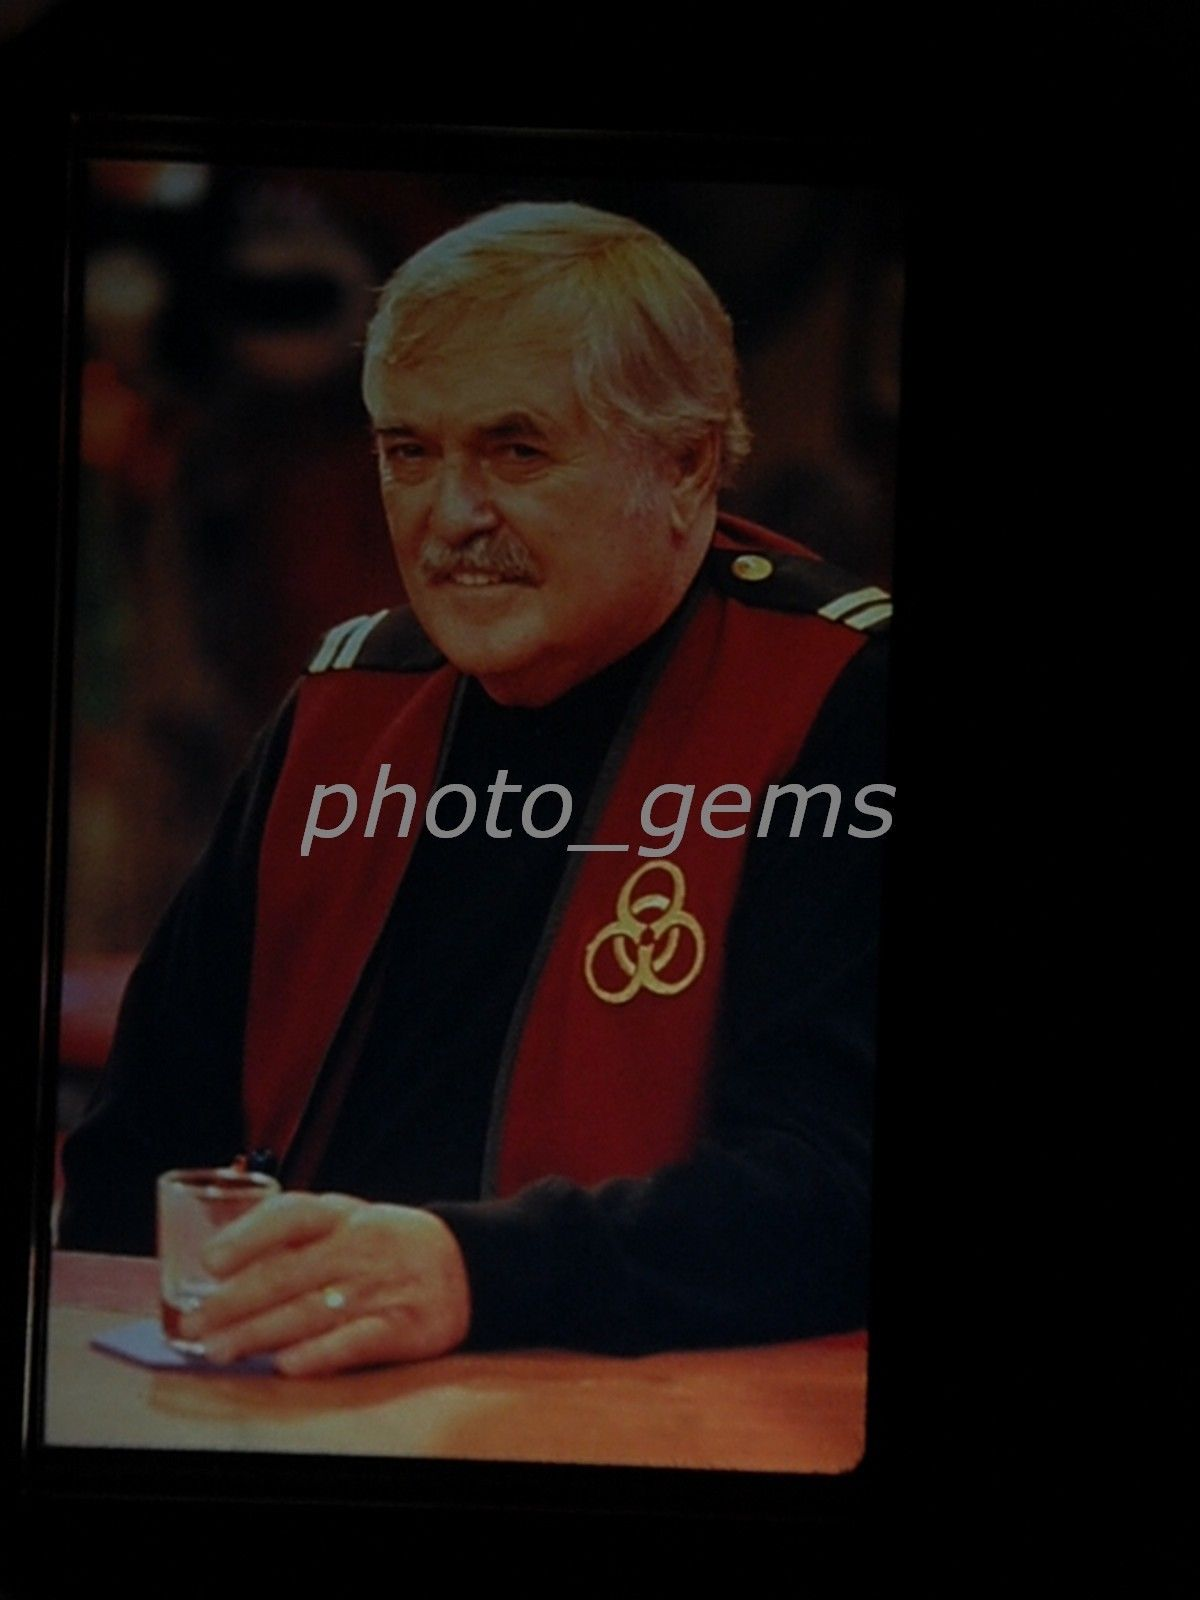 James_Doohan_Homeboys_In_Outer_Space_Original_35mm_Color_Promo_Slides_3_